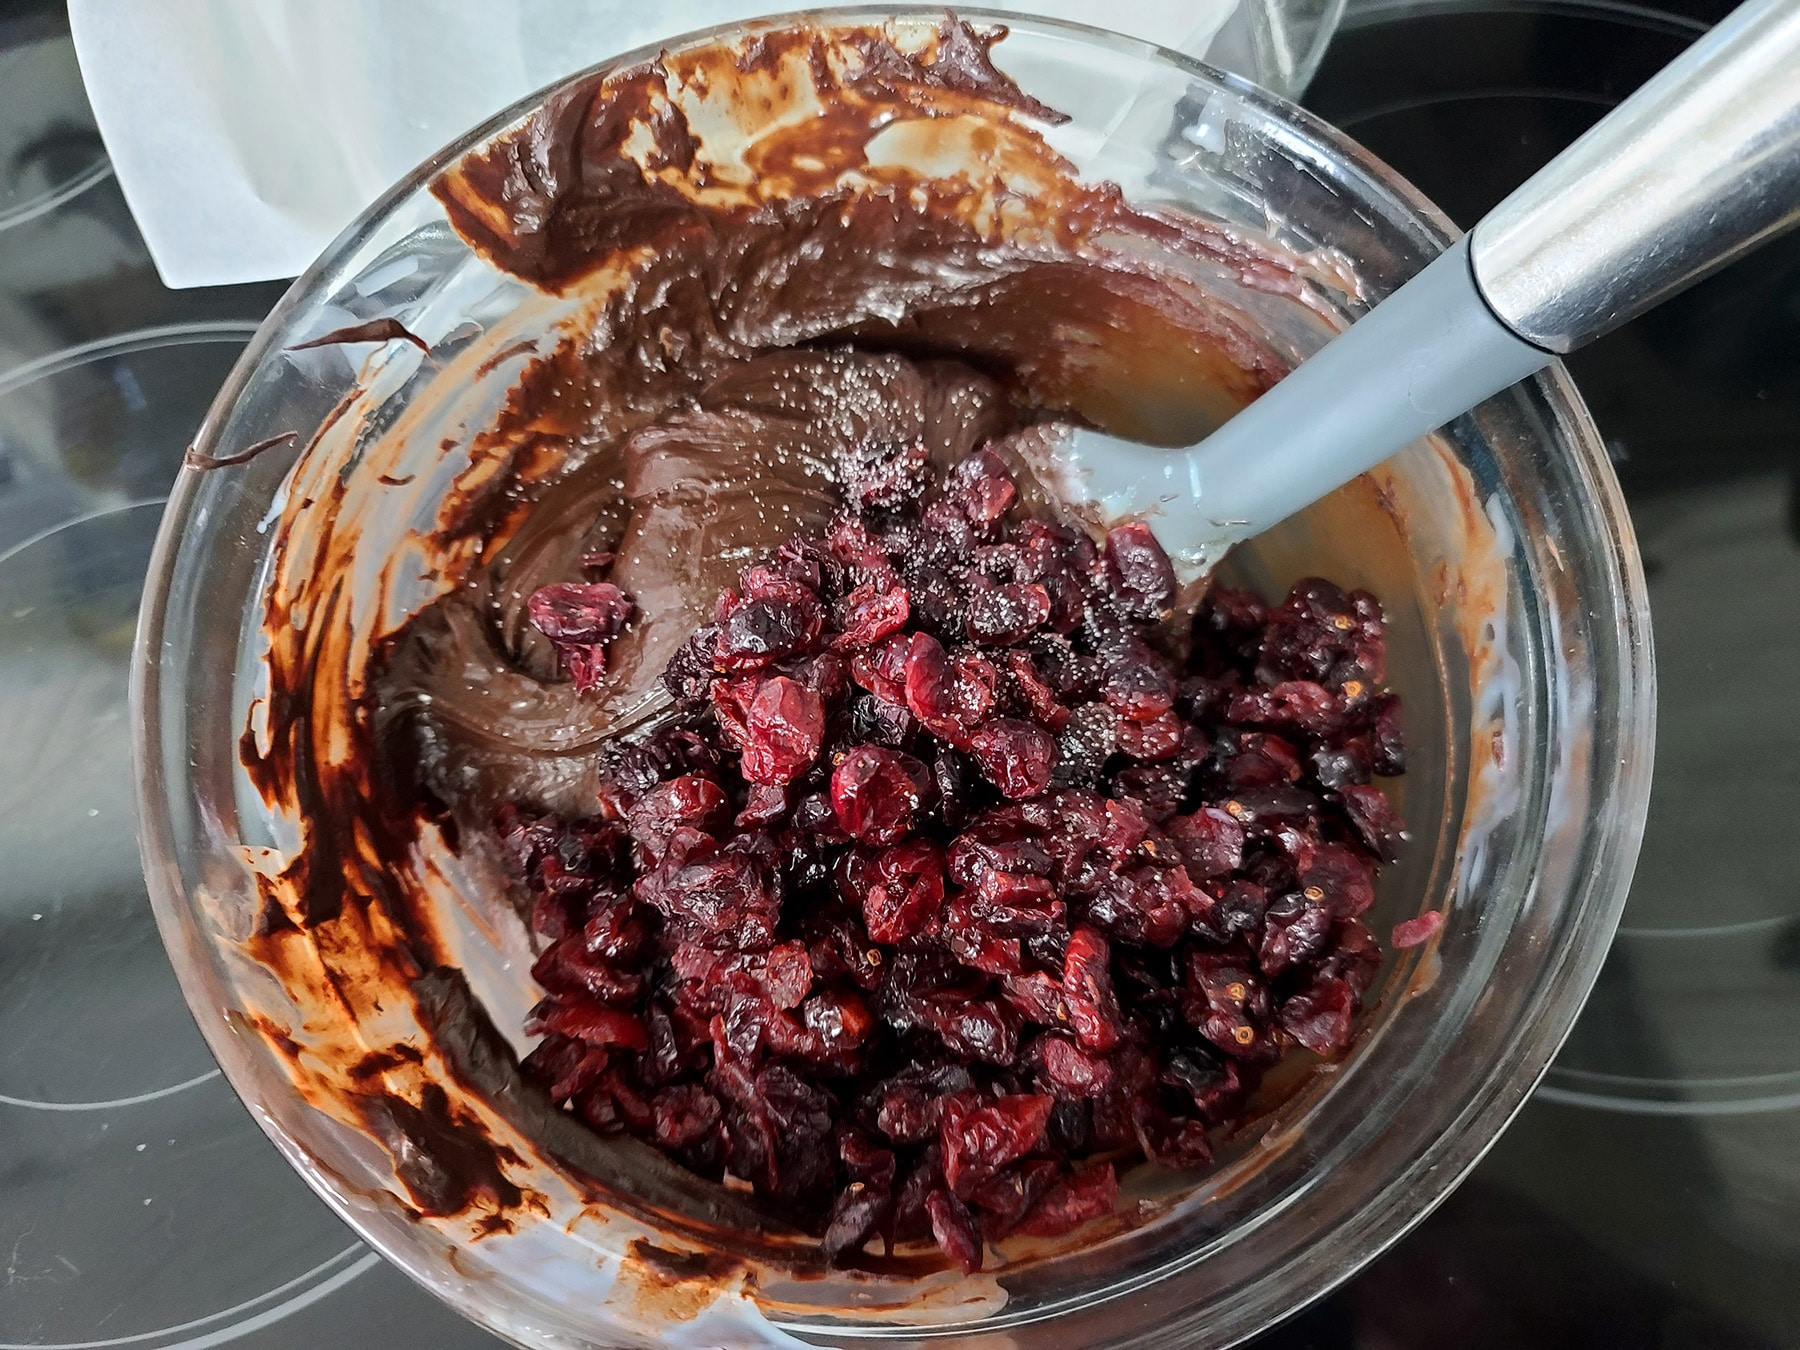 Cranberries and oramge extract being added to the fudge bowl.